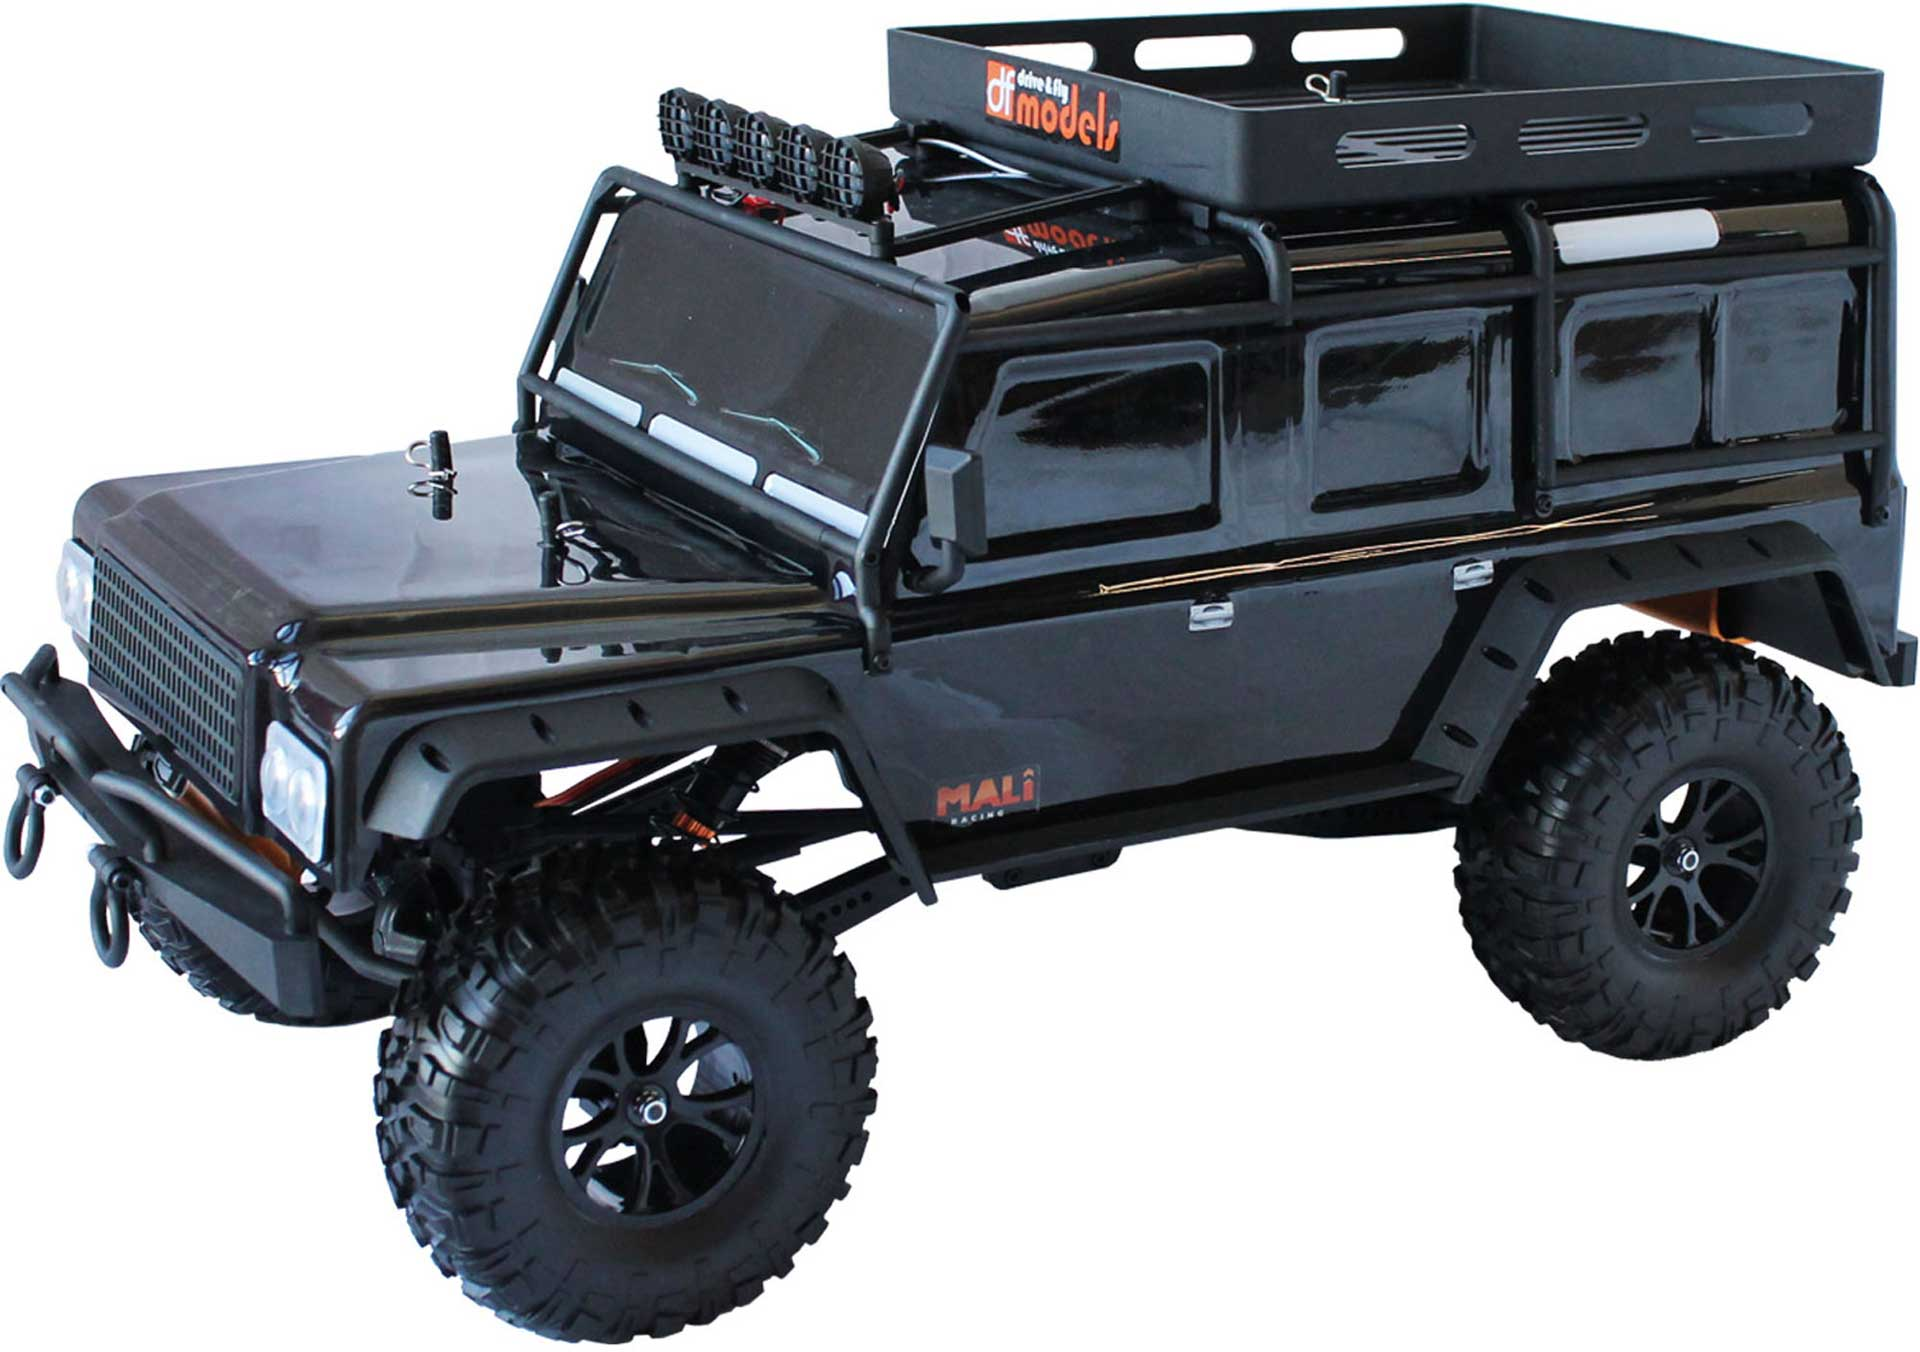 DRIVE & FLY MODELS DF-4J CRAWLER XXL RTR BLACK 4WD 1/10 WITH LIGHTING AND 5CH TRANSMITTER